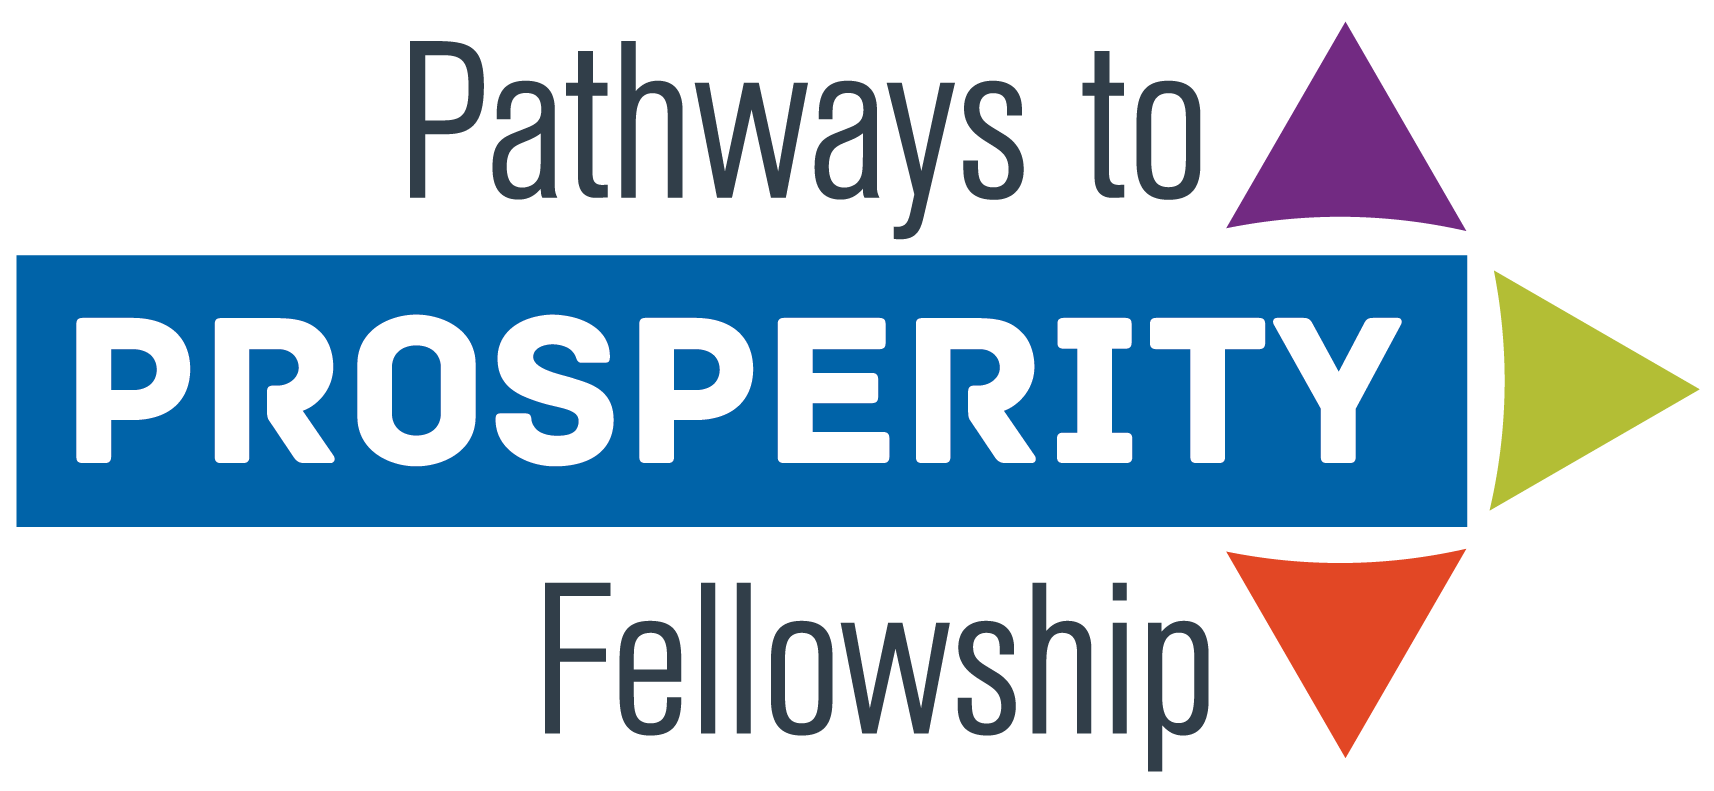 Pathways to Prosperity Fellowship for Educators